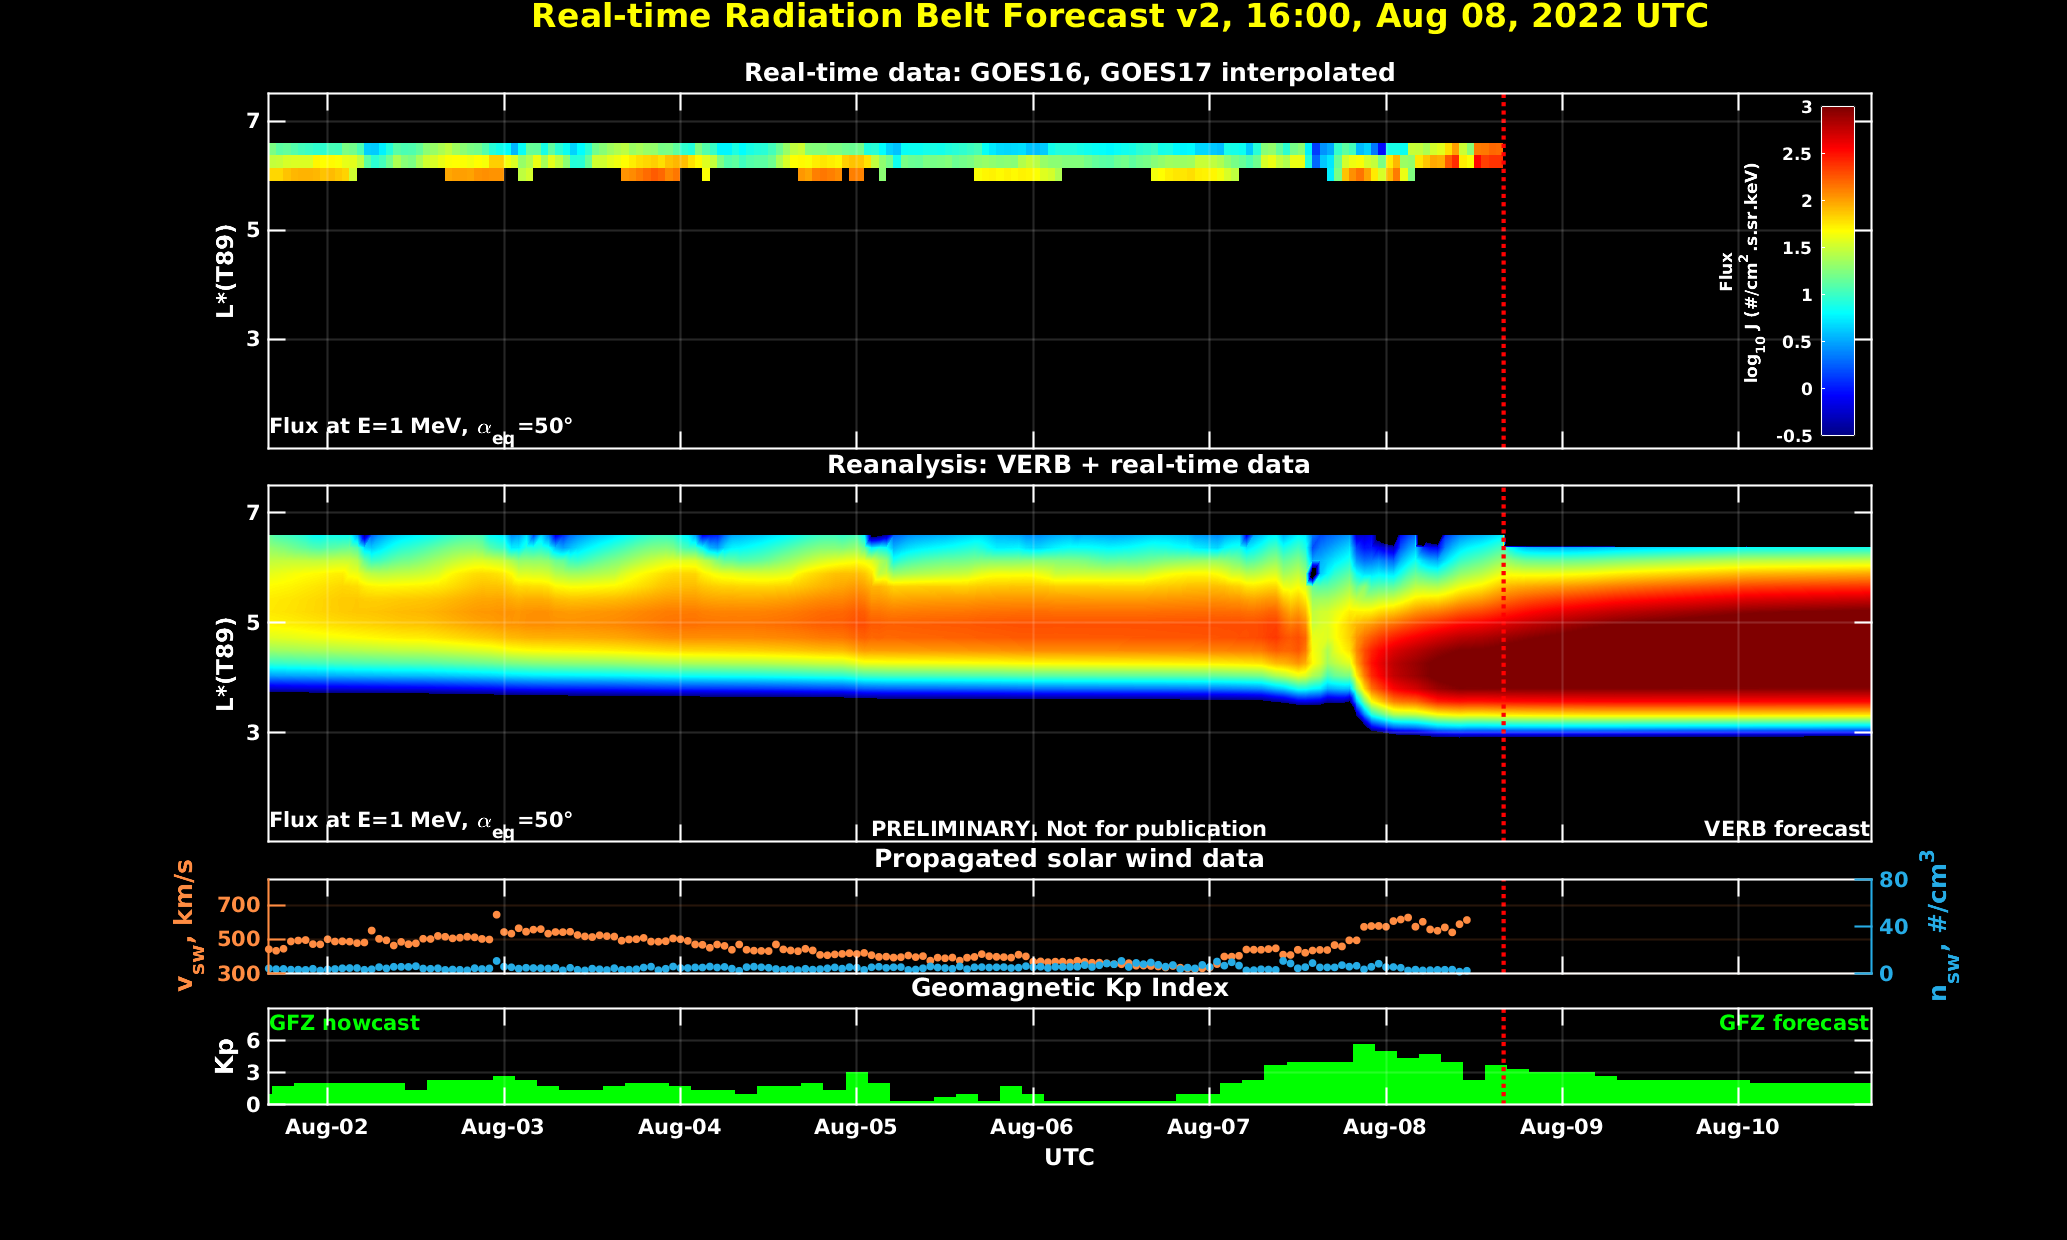 real time radioation belt forecast